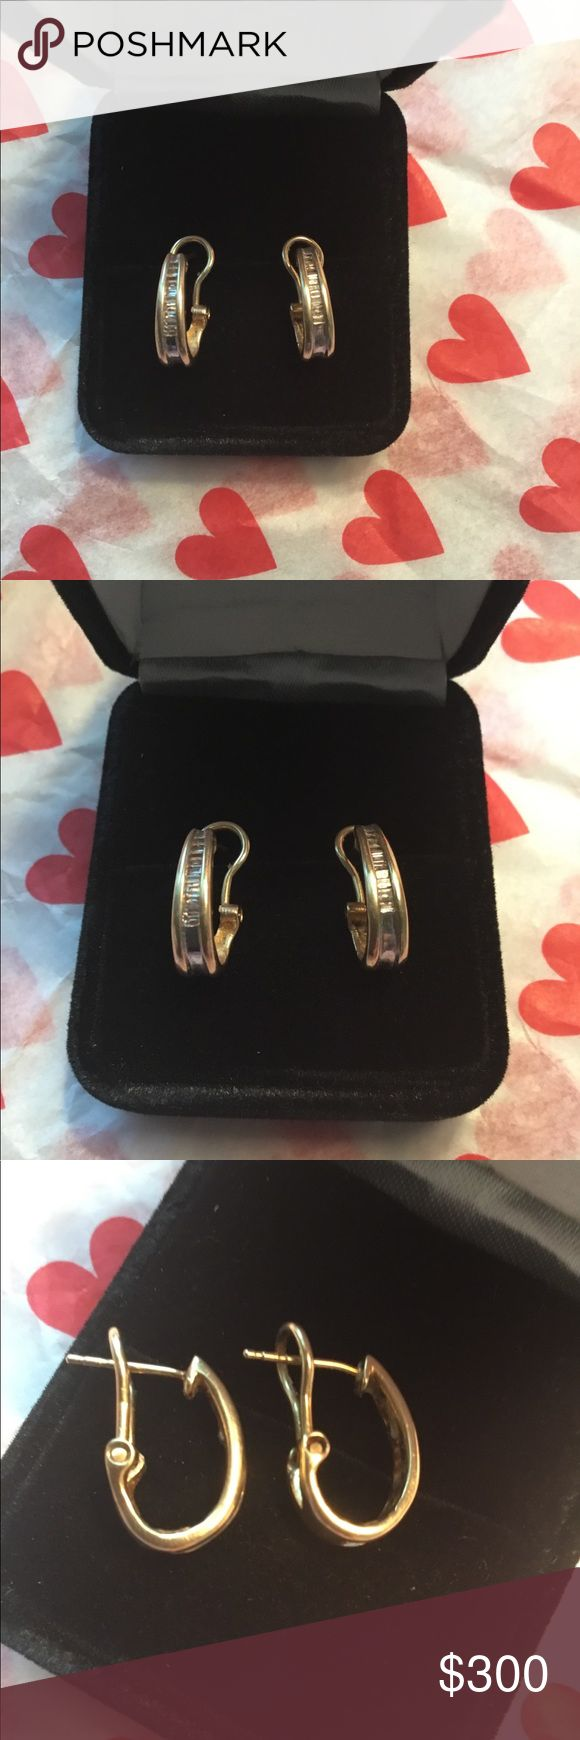 14kt YG Diamond Hoop Earrings These are so elegant yet simple. 14kt Solid Yellow Gold hoop earrings. They are lined with natural diamond baguettes. Very comfortable earrings. Jewelry Earrings